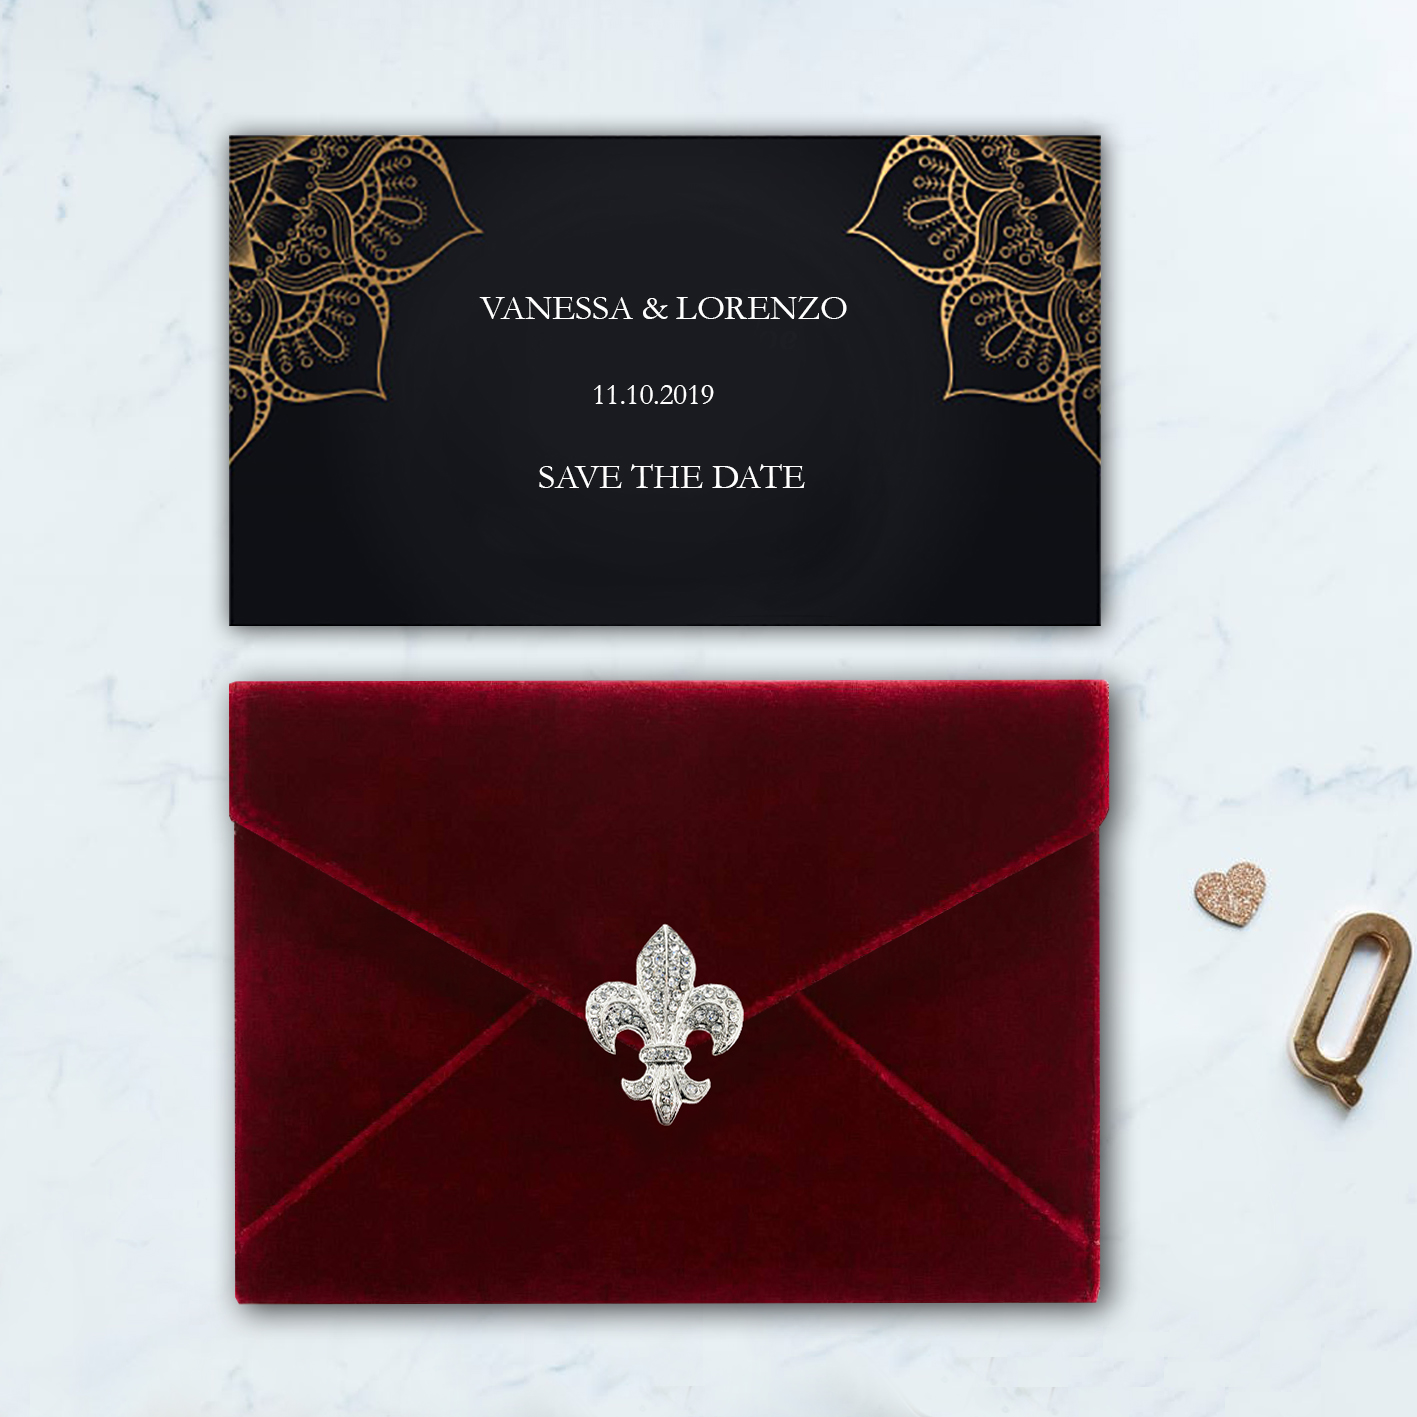 Red velvet envelope